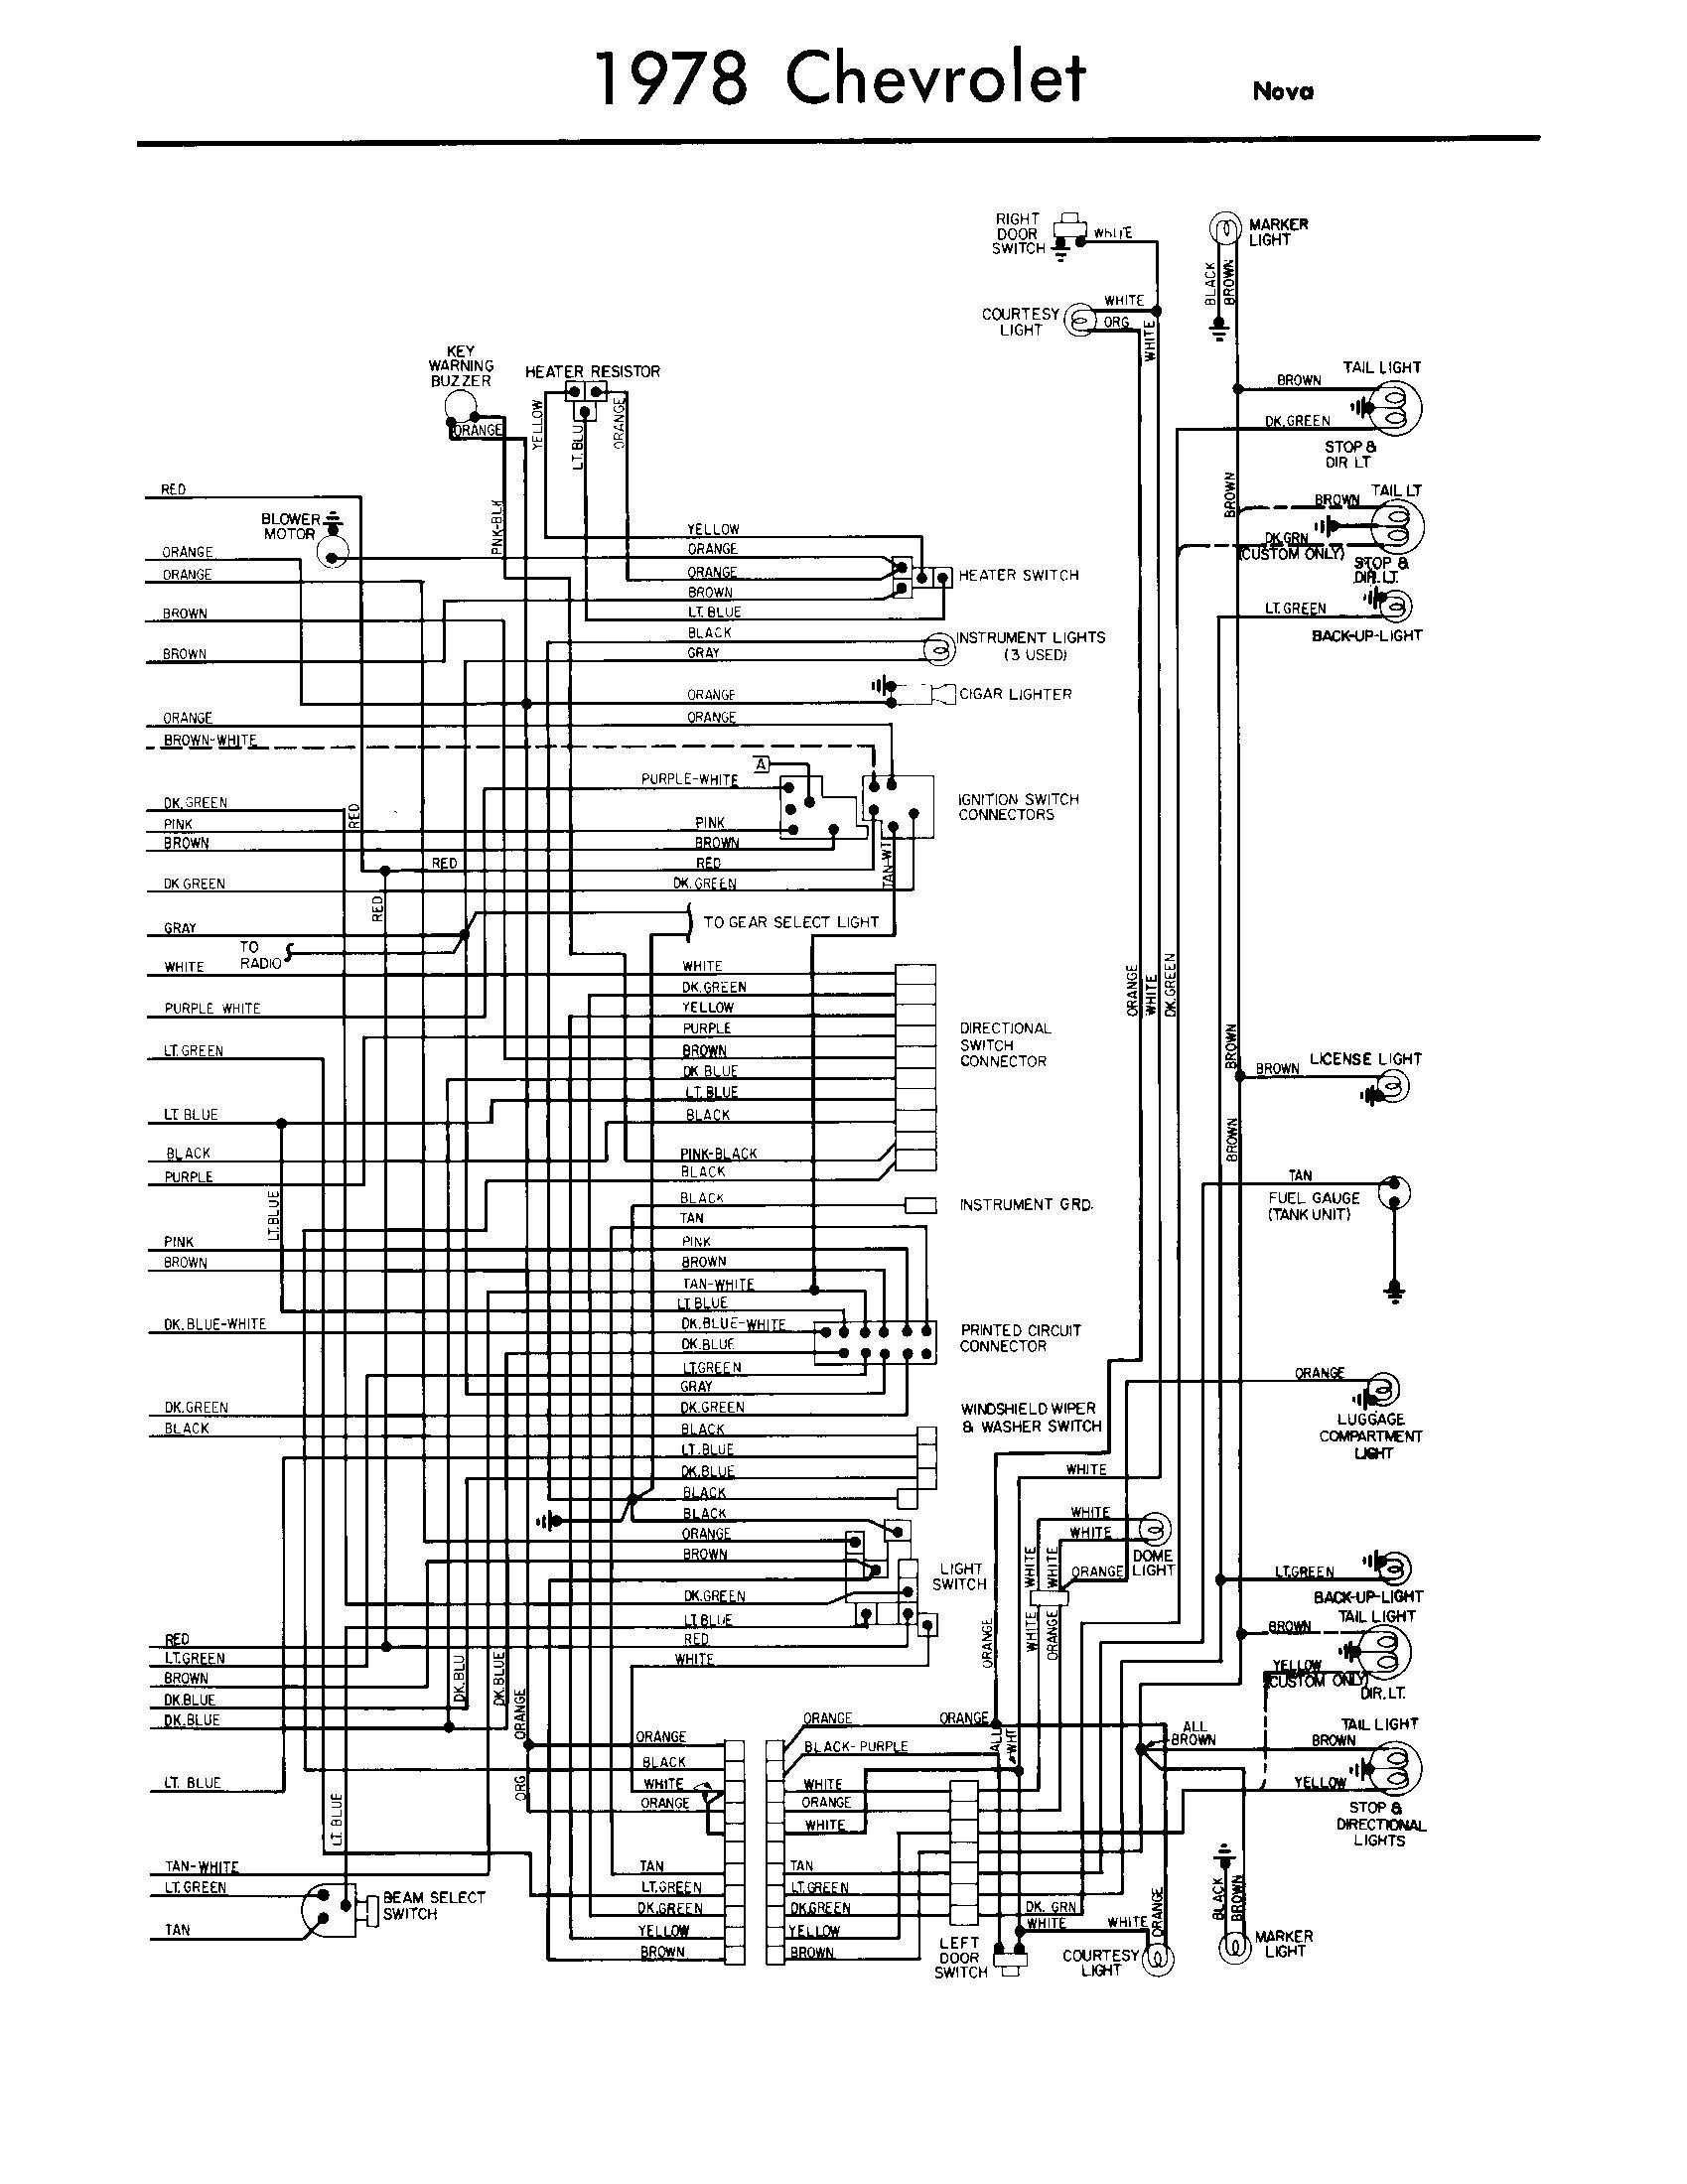 Wiring Diagrams 1978 Chrysler New Yorker Wire Data 1991 Imperial Diagram Bonneville On Fuse Box Rh Theiquest Co 1972